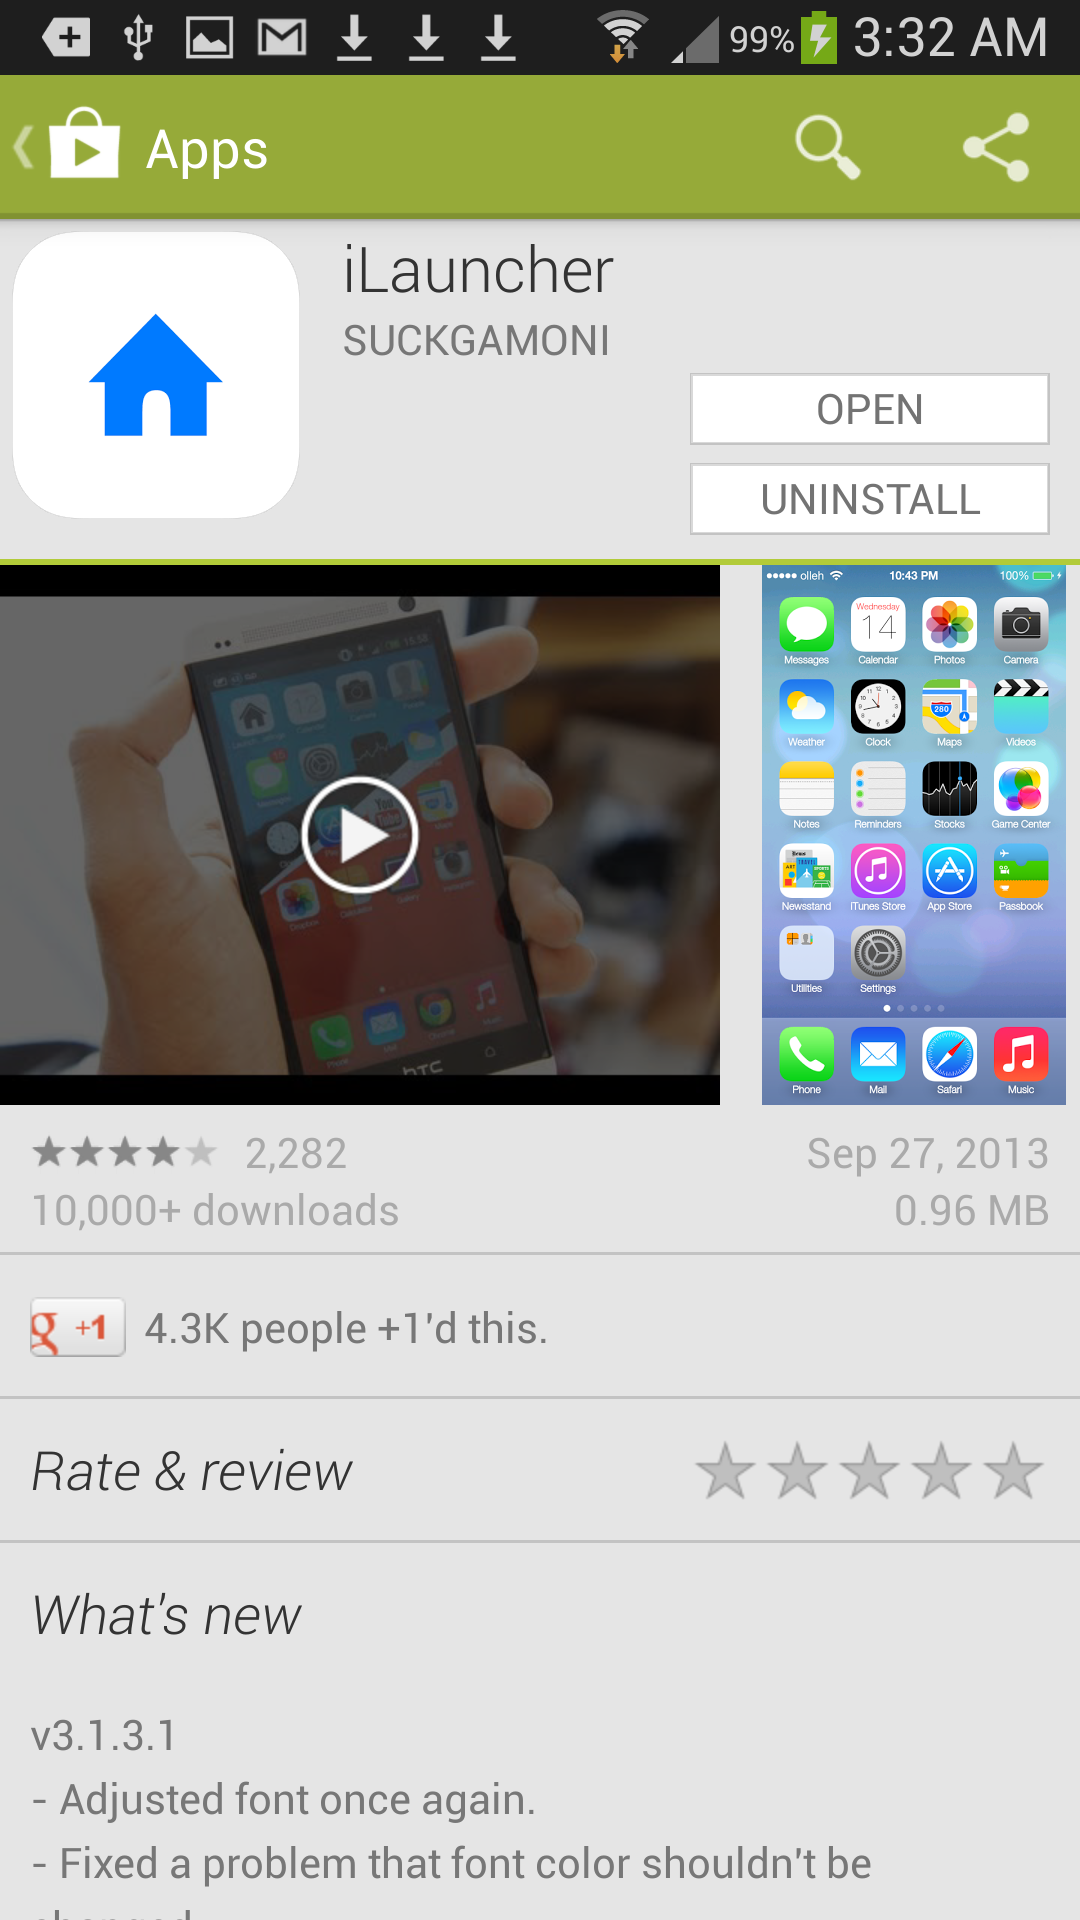 ios 7 iLauncher Comes to the Google Play Store